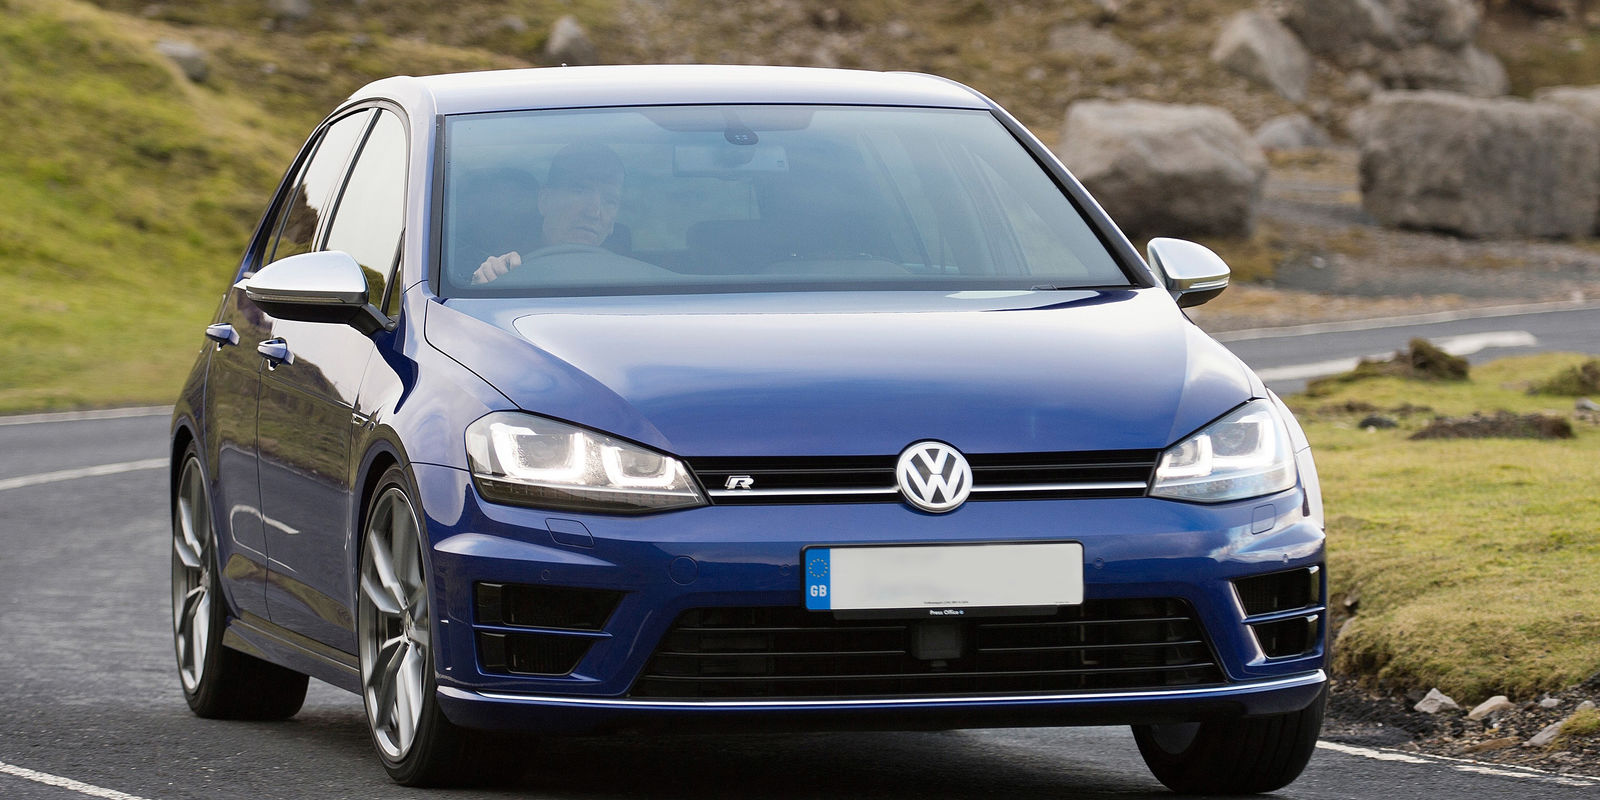 Vw Golf R Estate Review >> Volkswagen Golf R Review | carwow